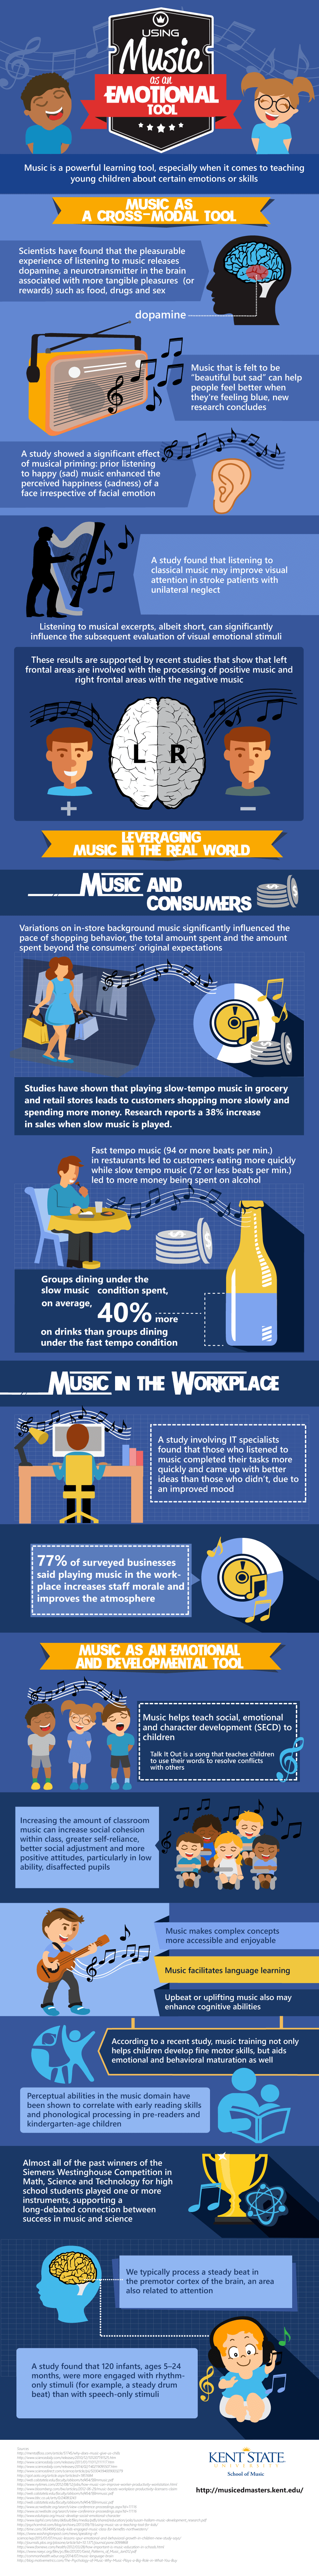 Using Music As An Emotional Tool Infographic